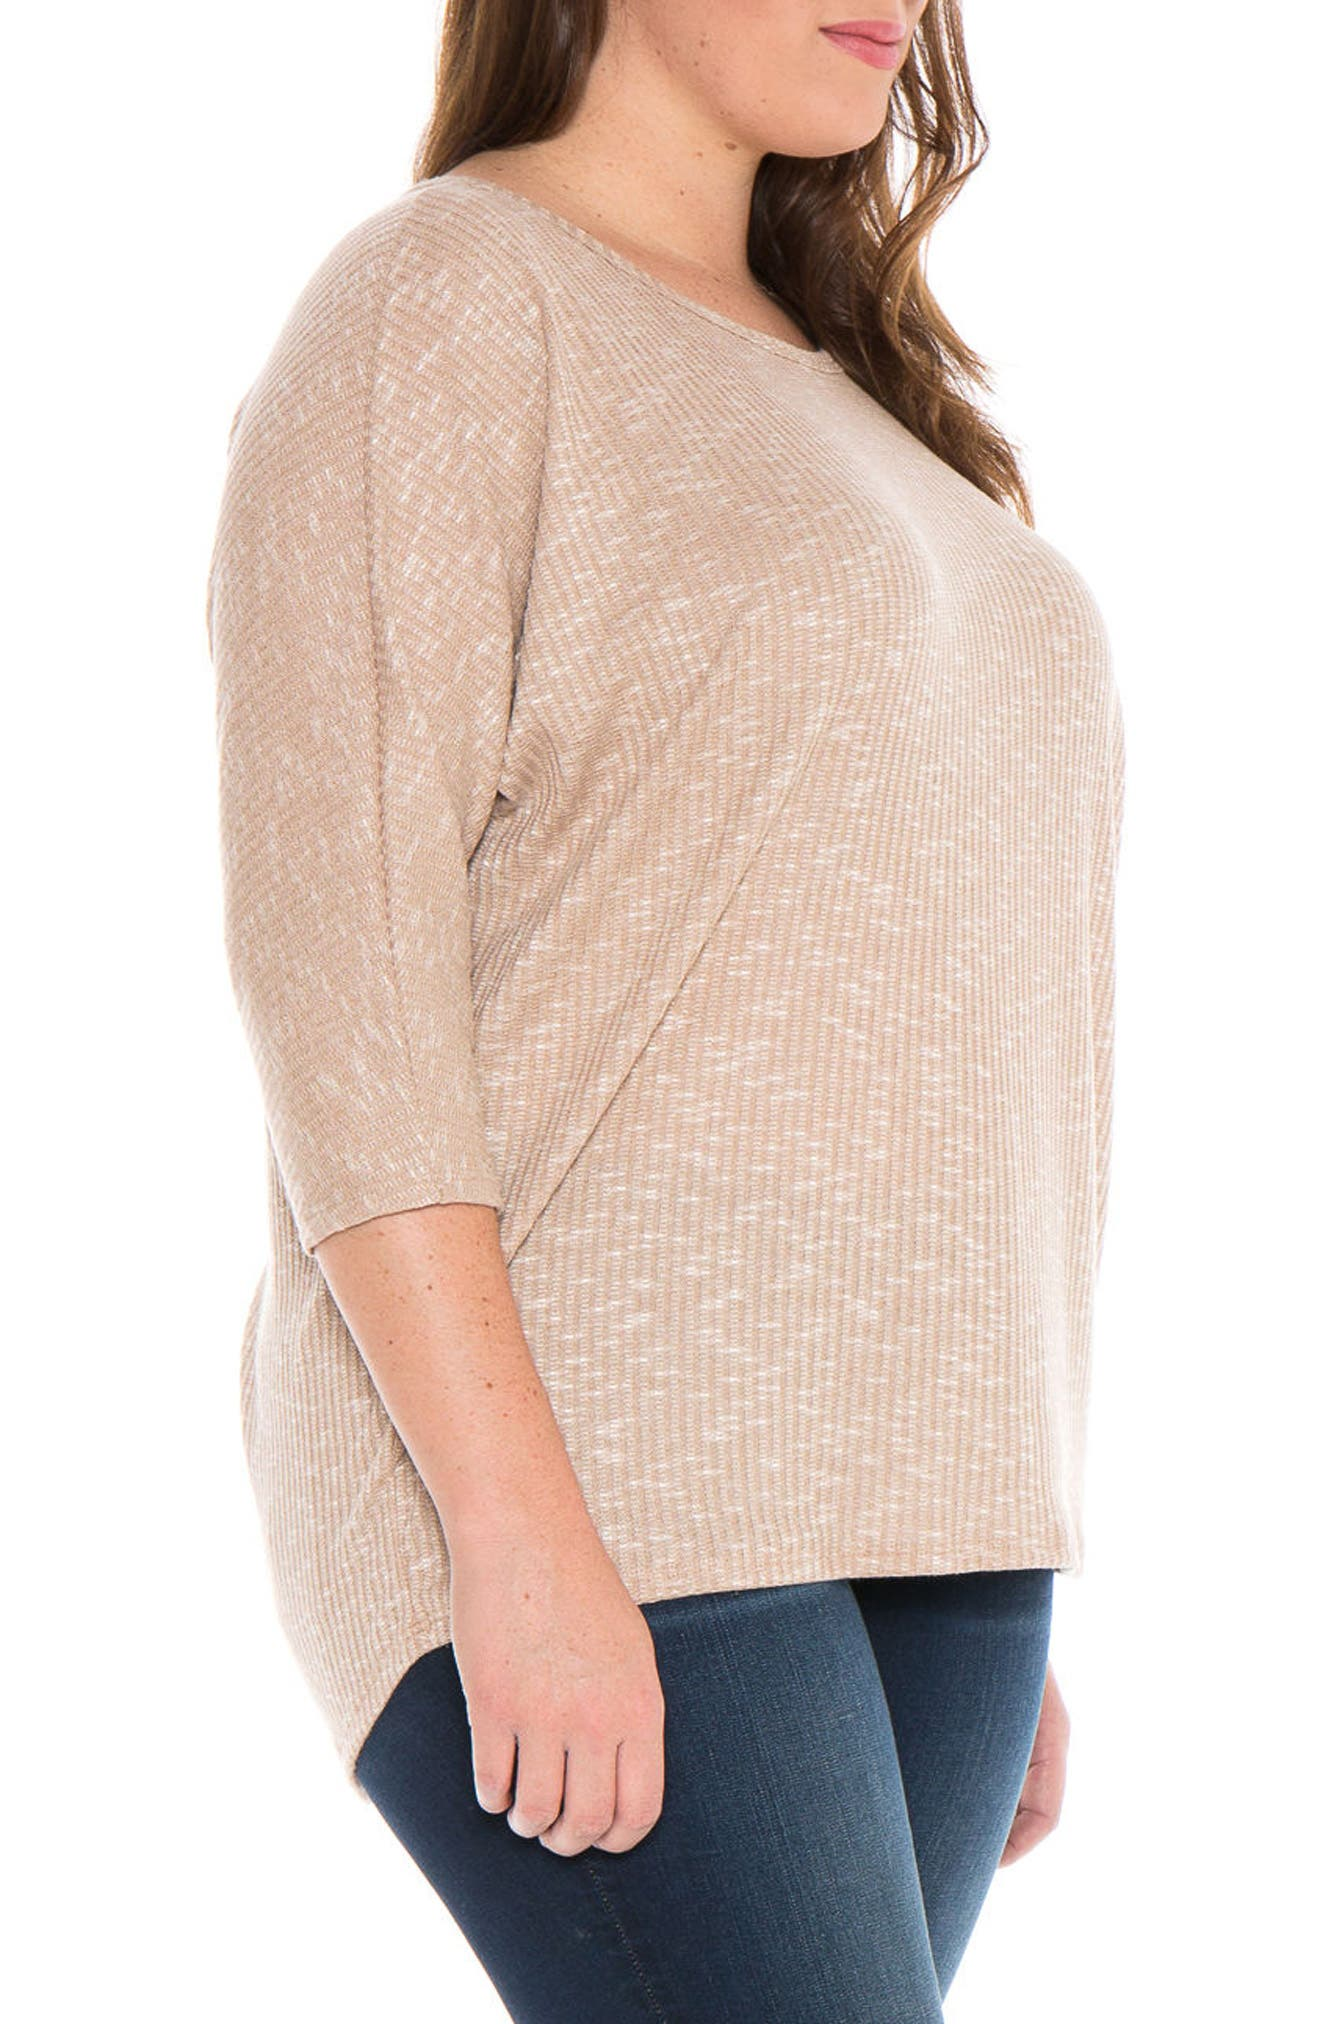 Alternate Image 3  - SLINK Jeans Marble Knit Dolman Top (Plus Size)